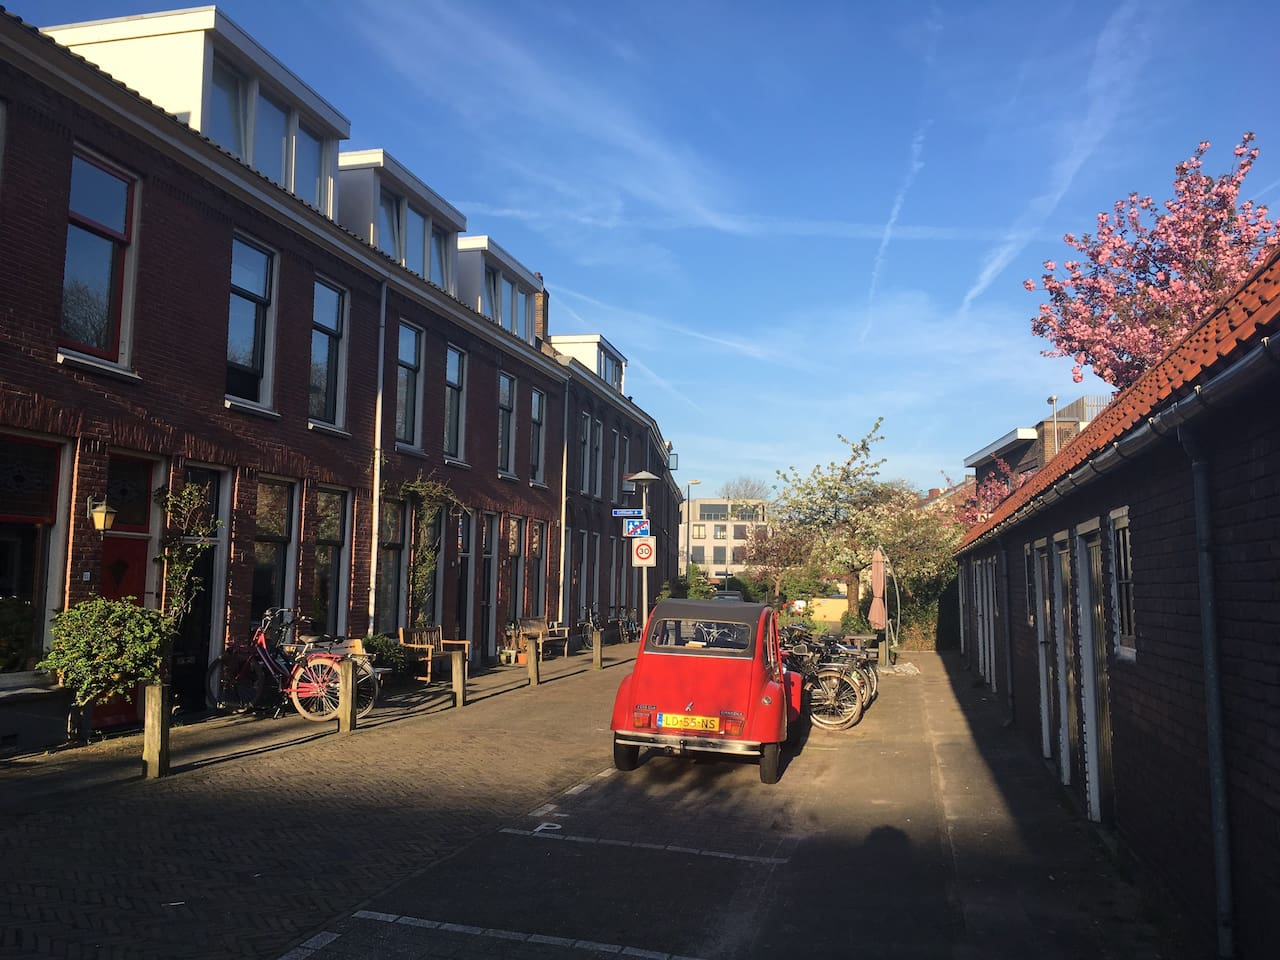 Welcome in our cozy street, a friendly residential area near Utrecht city centre